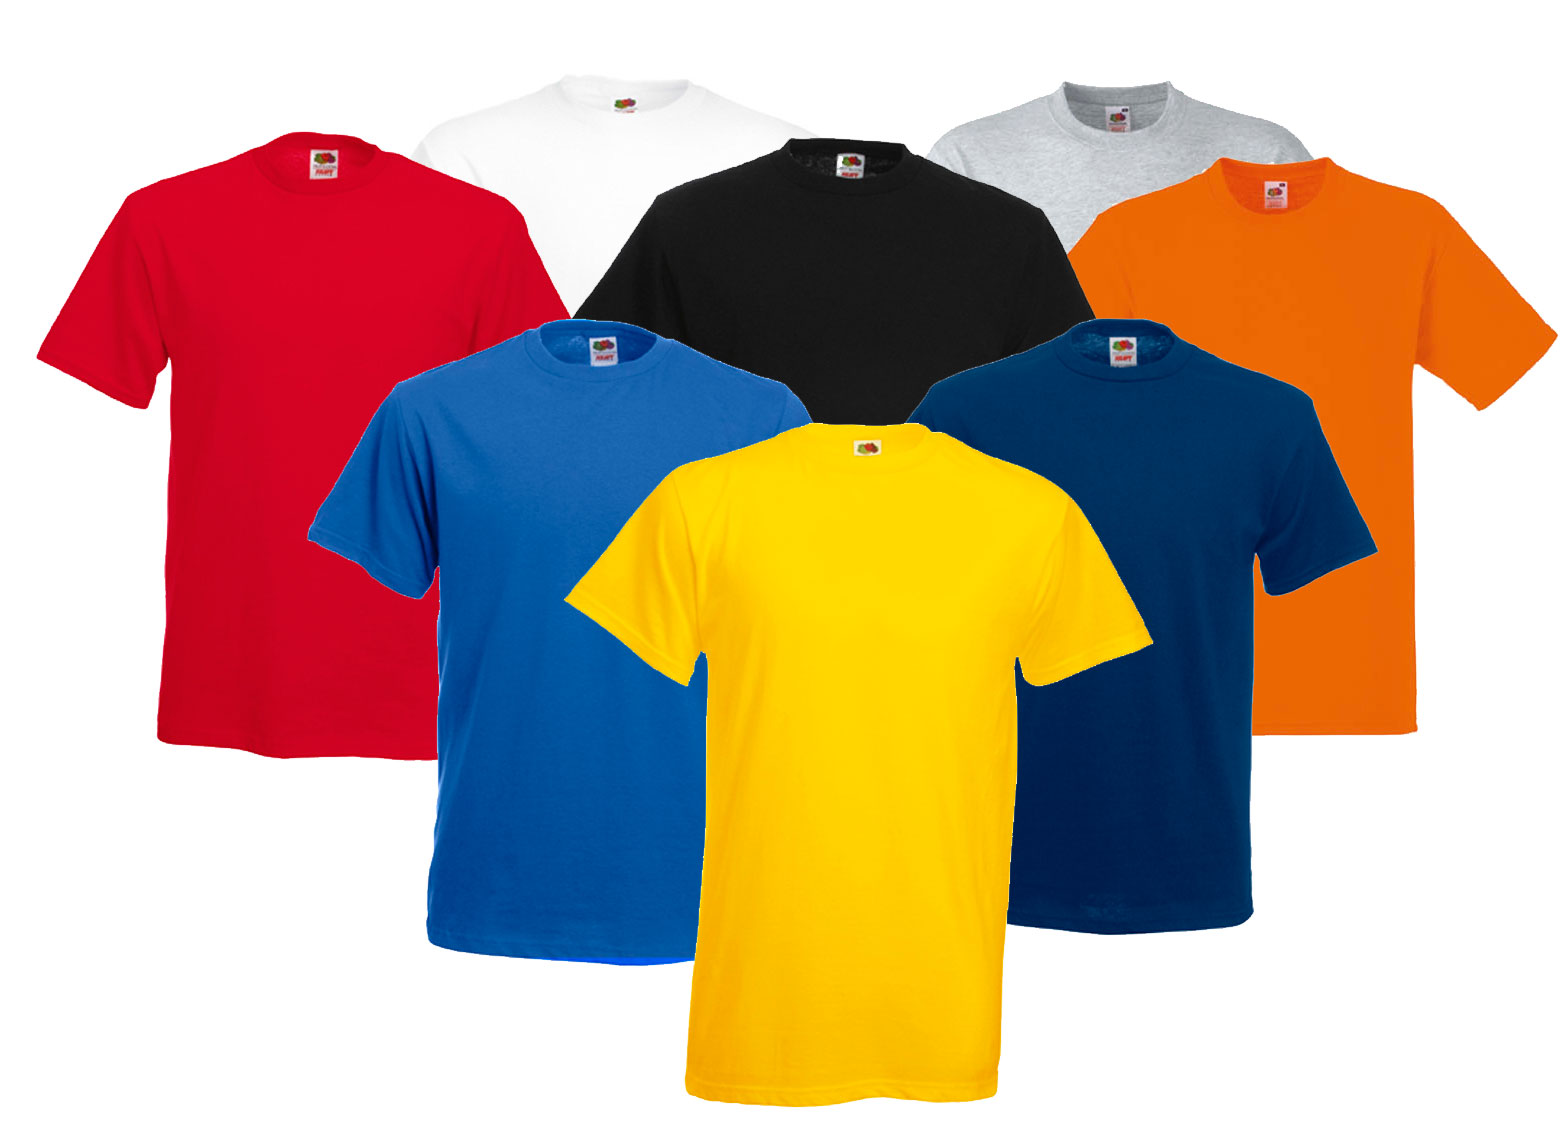 fea82a96233b Mens Round Neck T Shirts Manufacturer in Pune Maharashtra India by ...